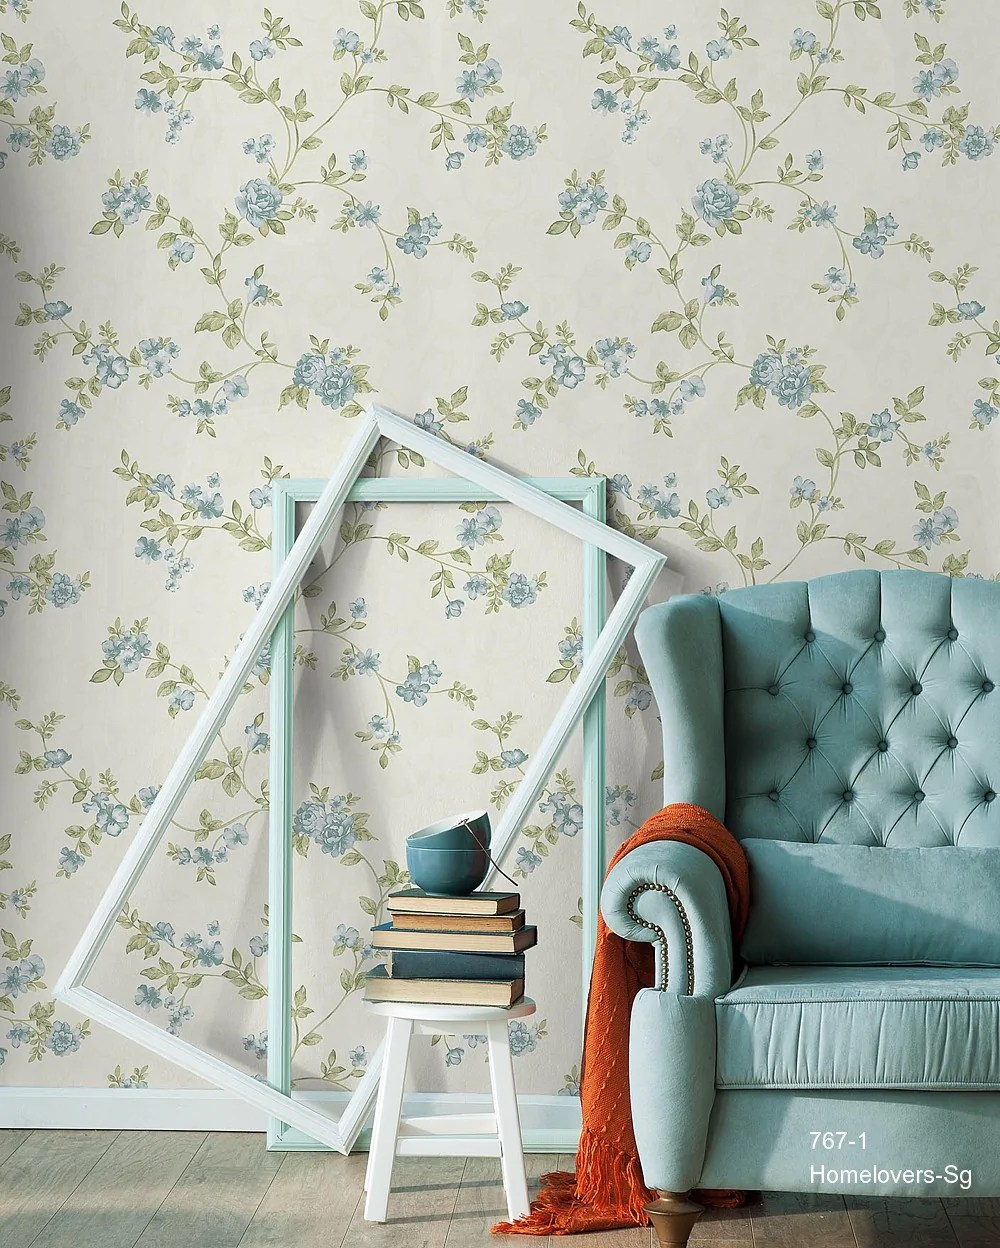 Korea Wallpaper Specialist Homelovers Singapore Homelovers Sg